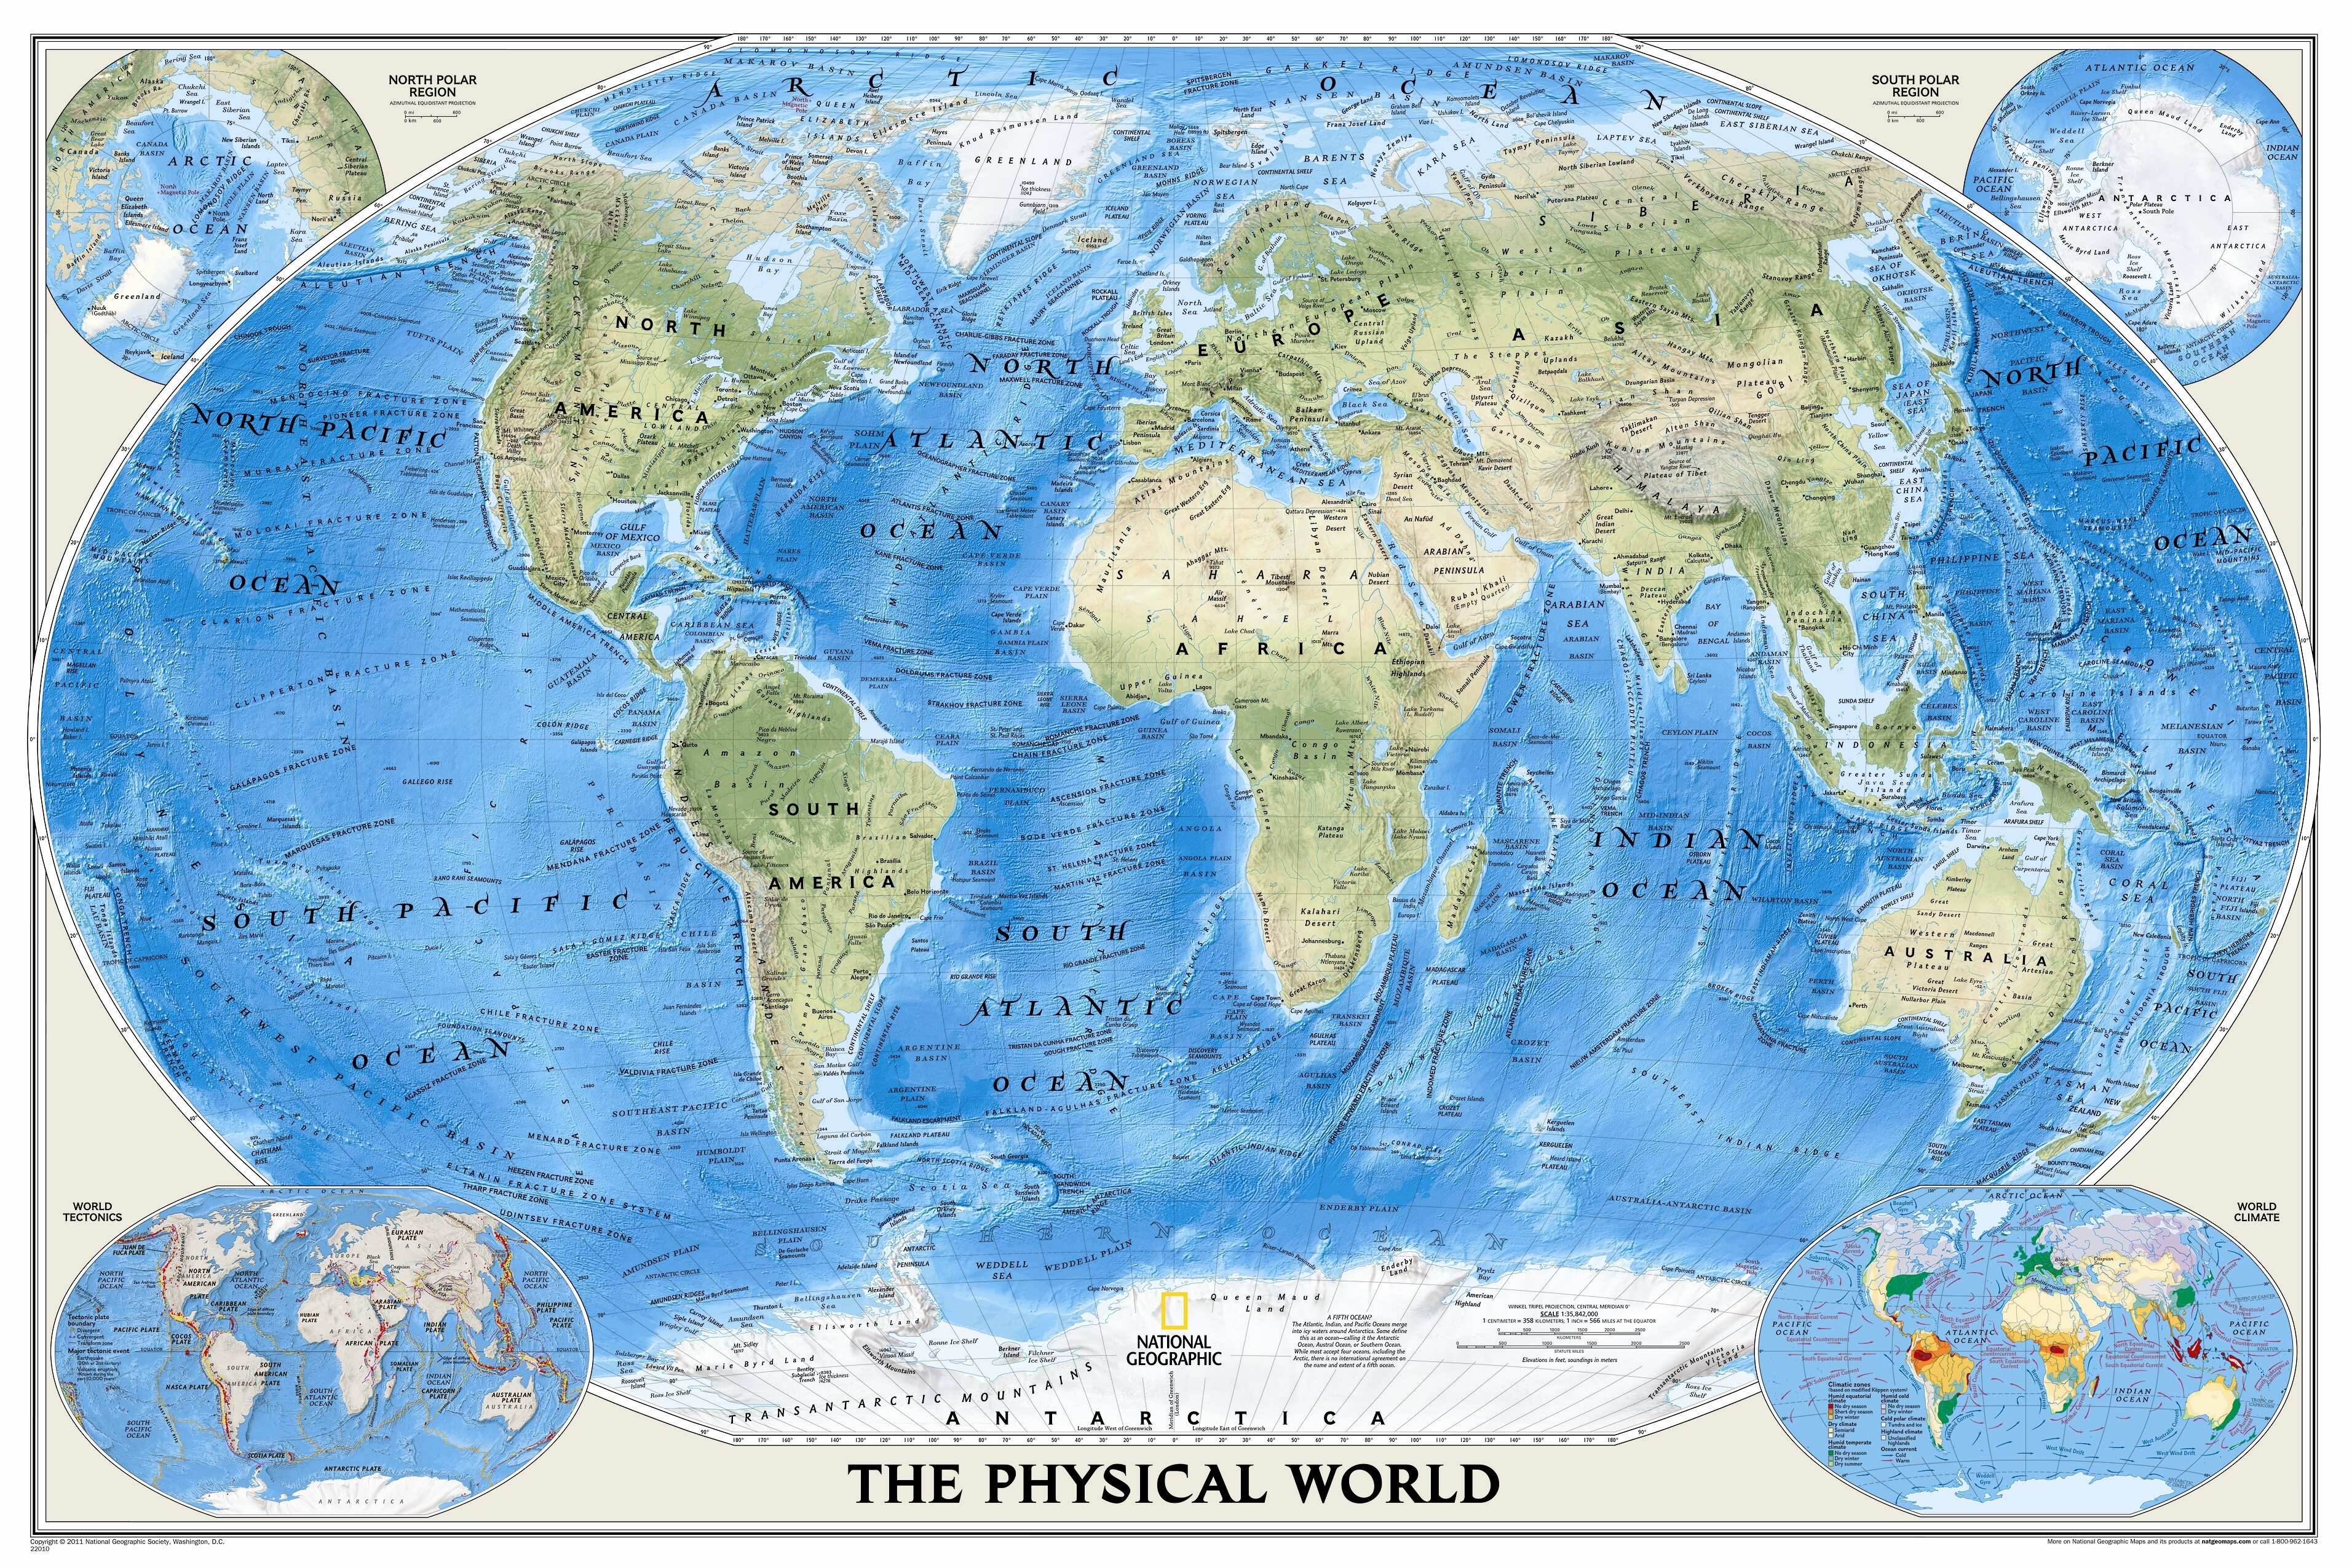 National Geographic Maps The Physical World Wall Map | Wayfair